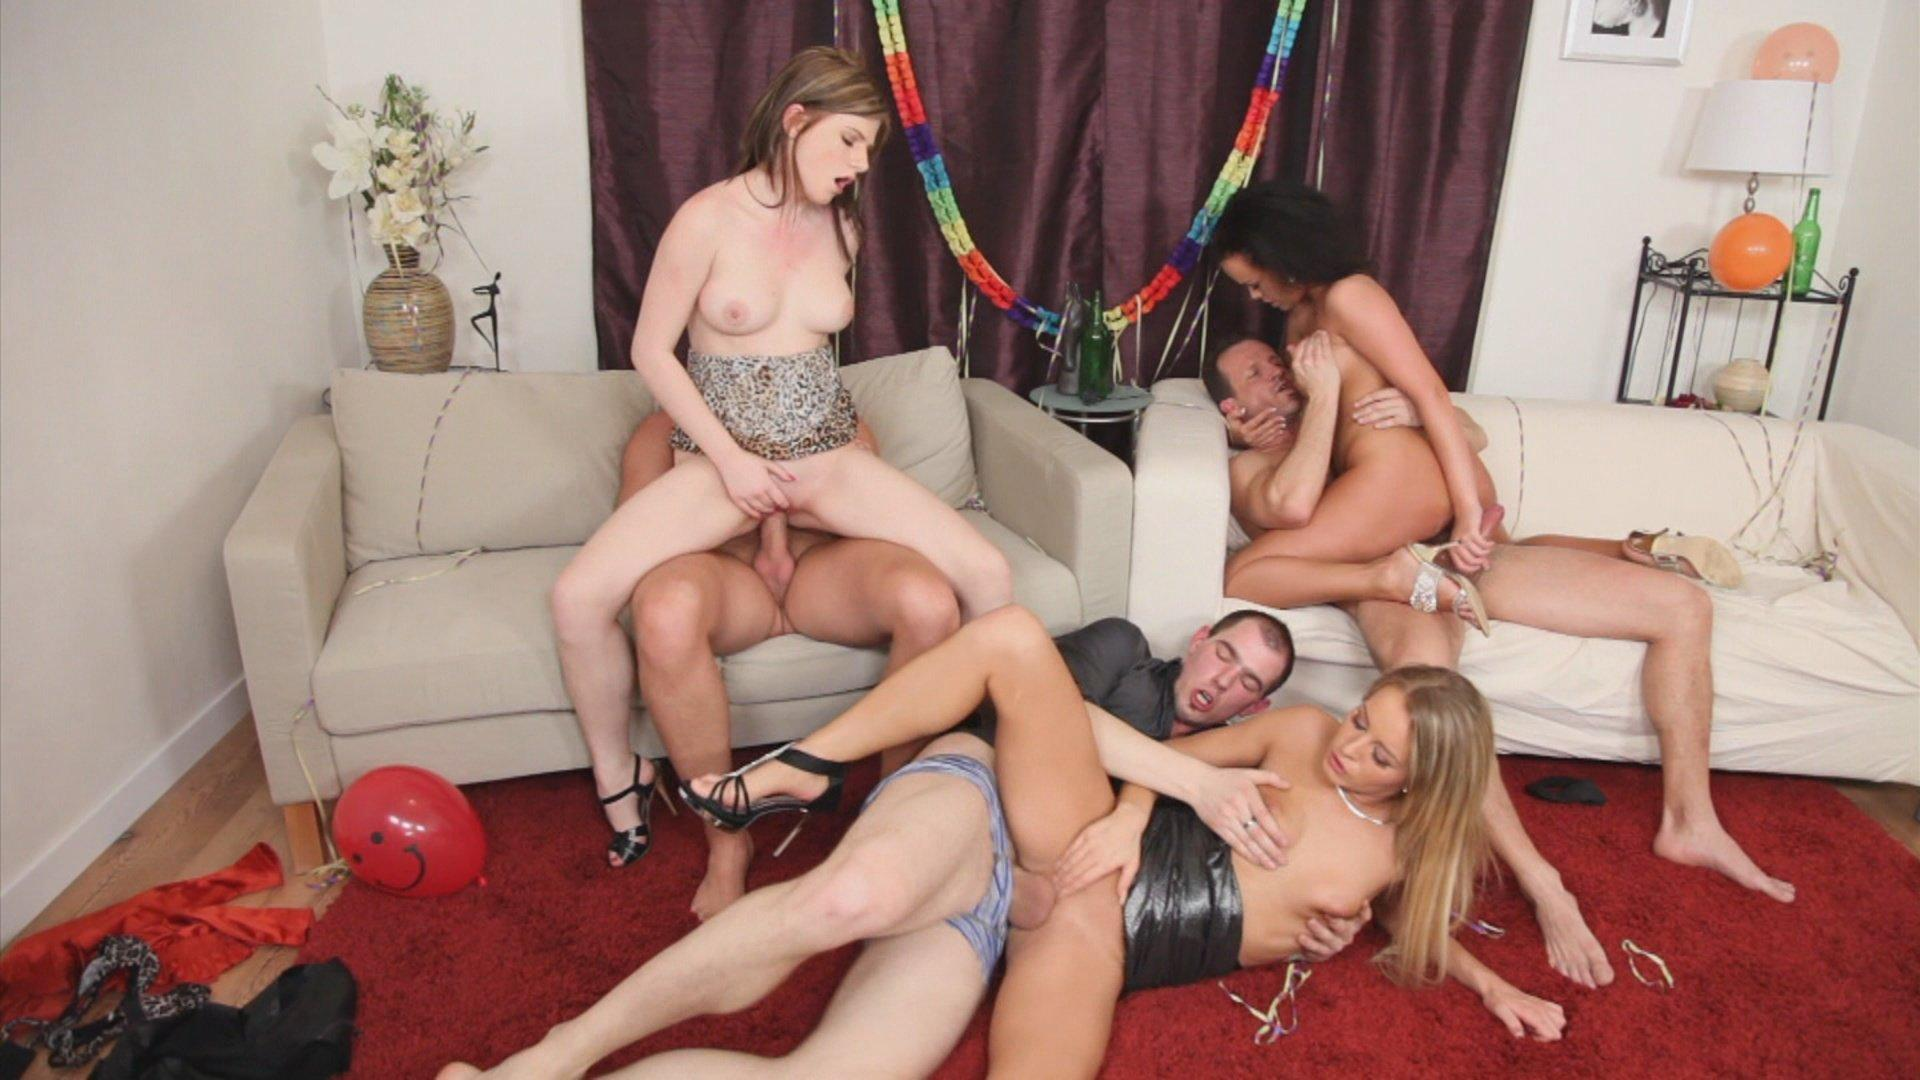 India foursome adult stories